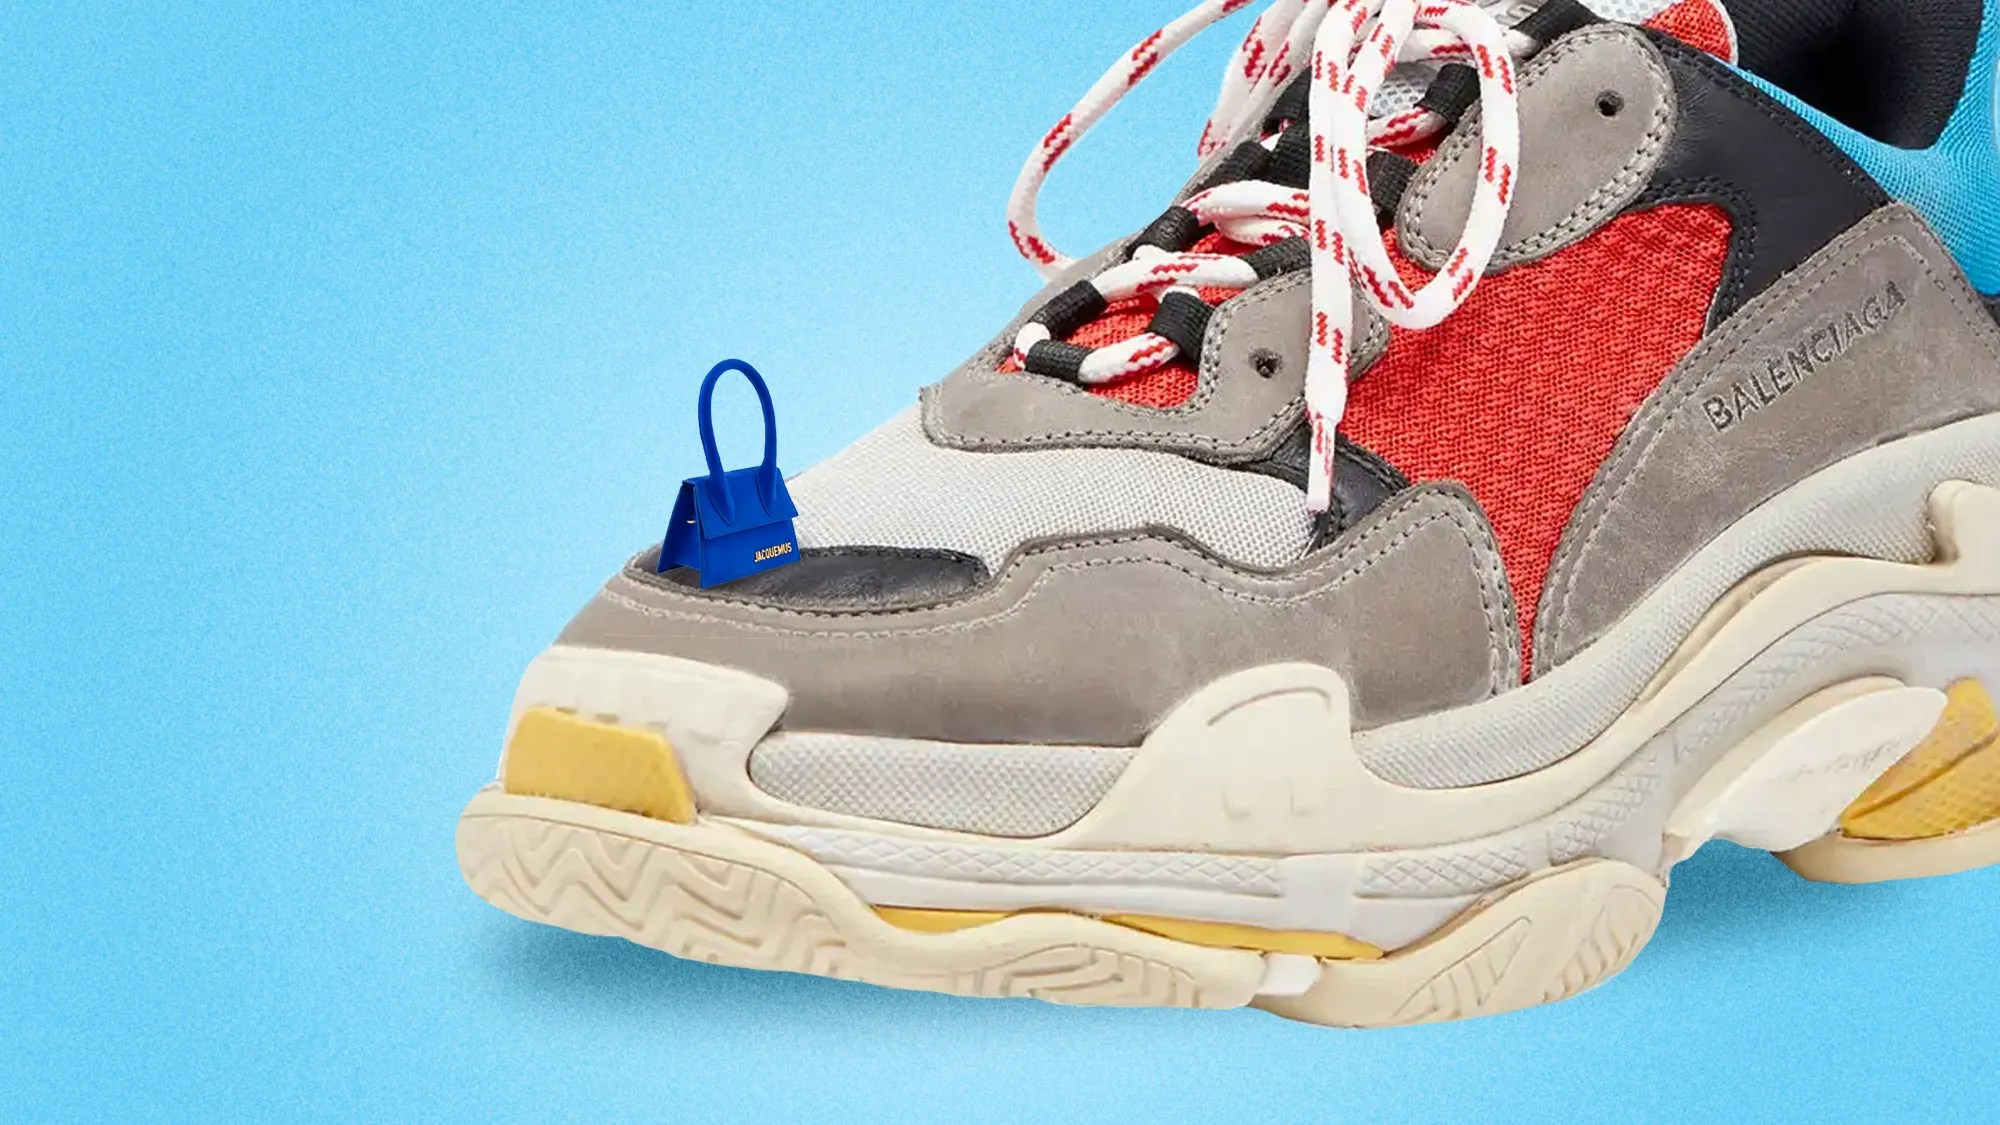 Used Select Shop Meme Mori Balenciaga Triple S Trainers 533883